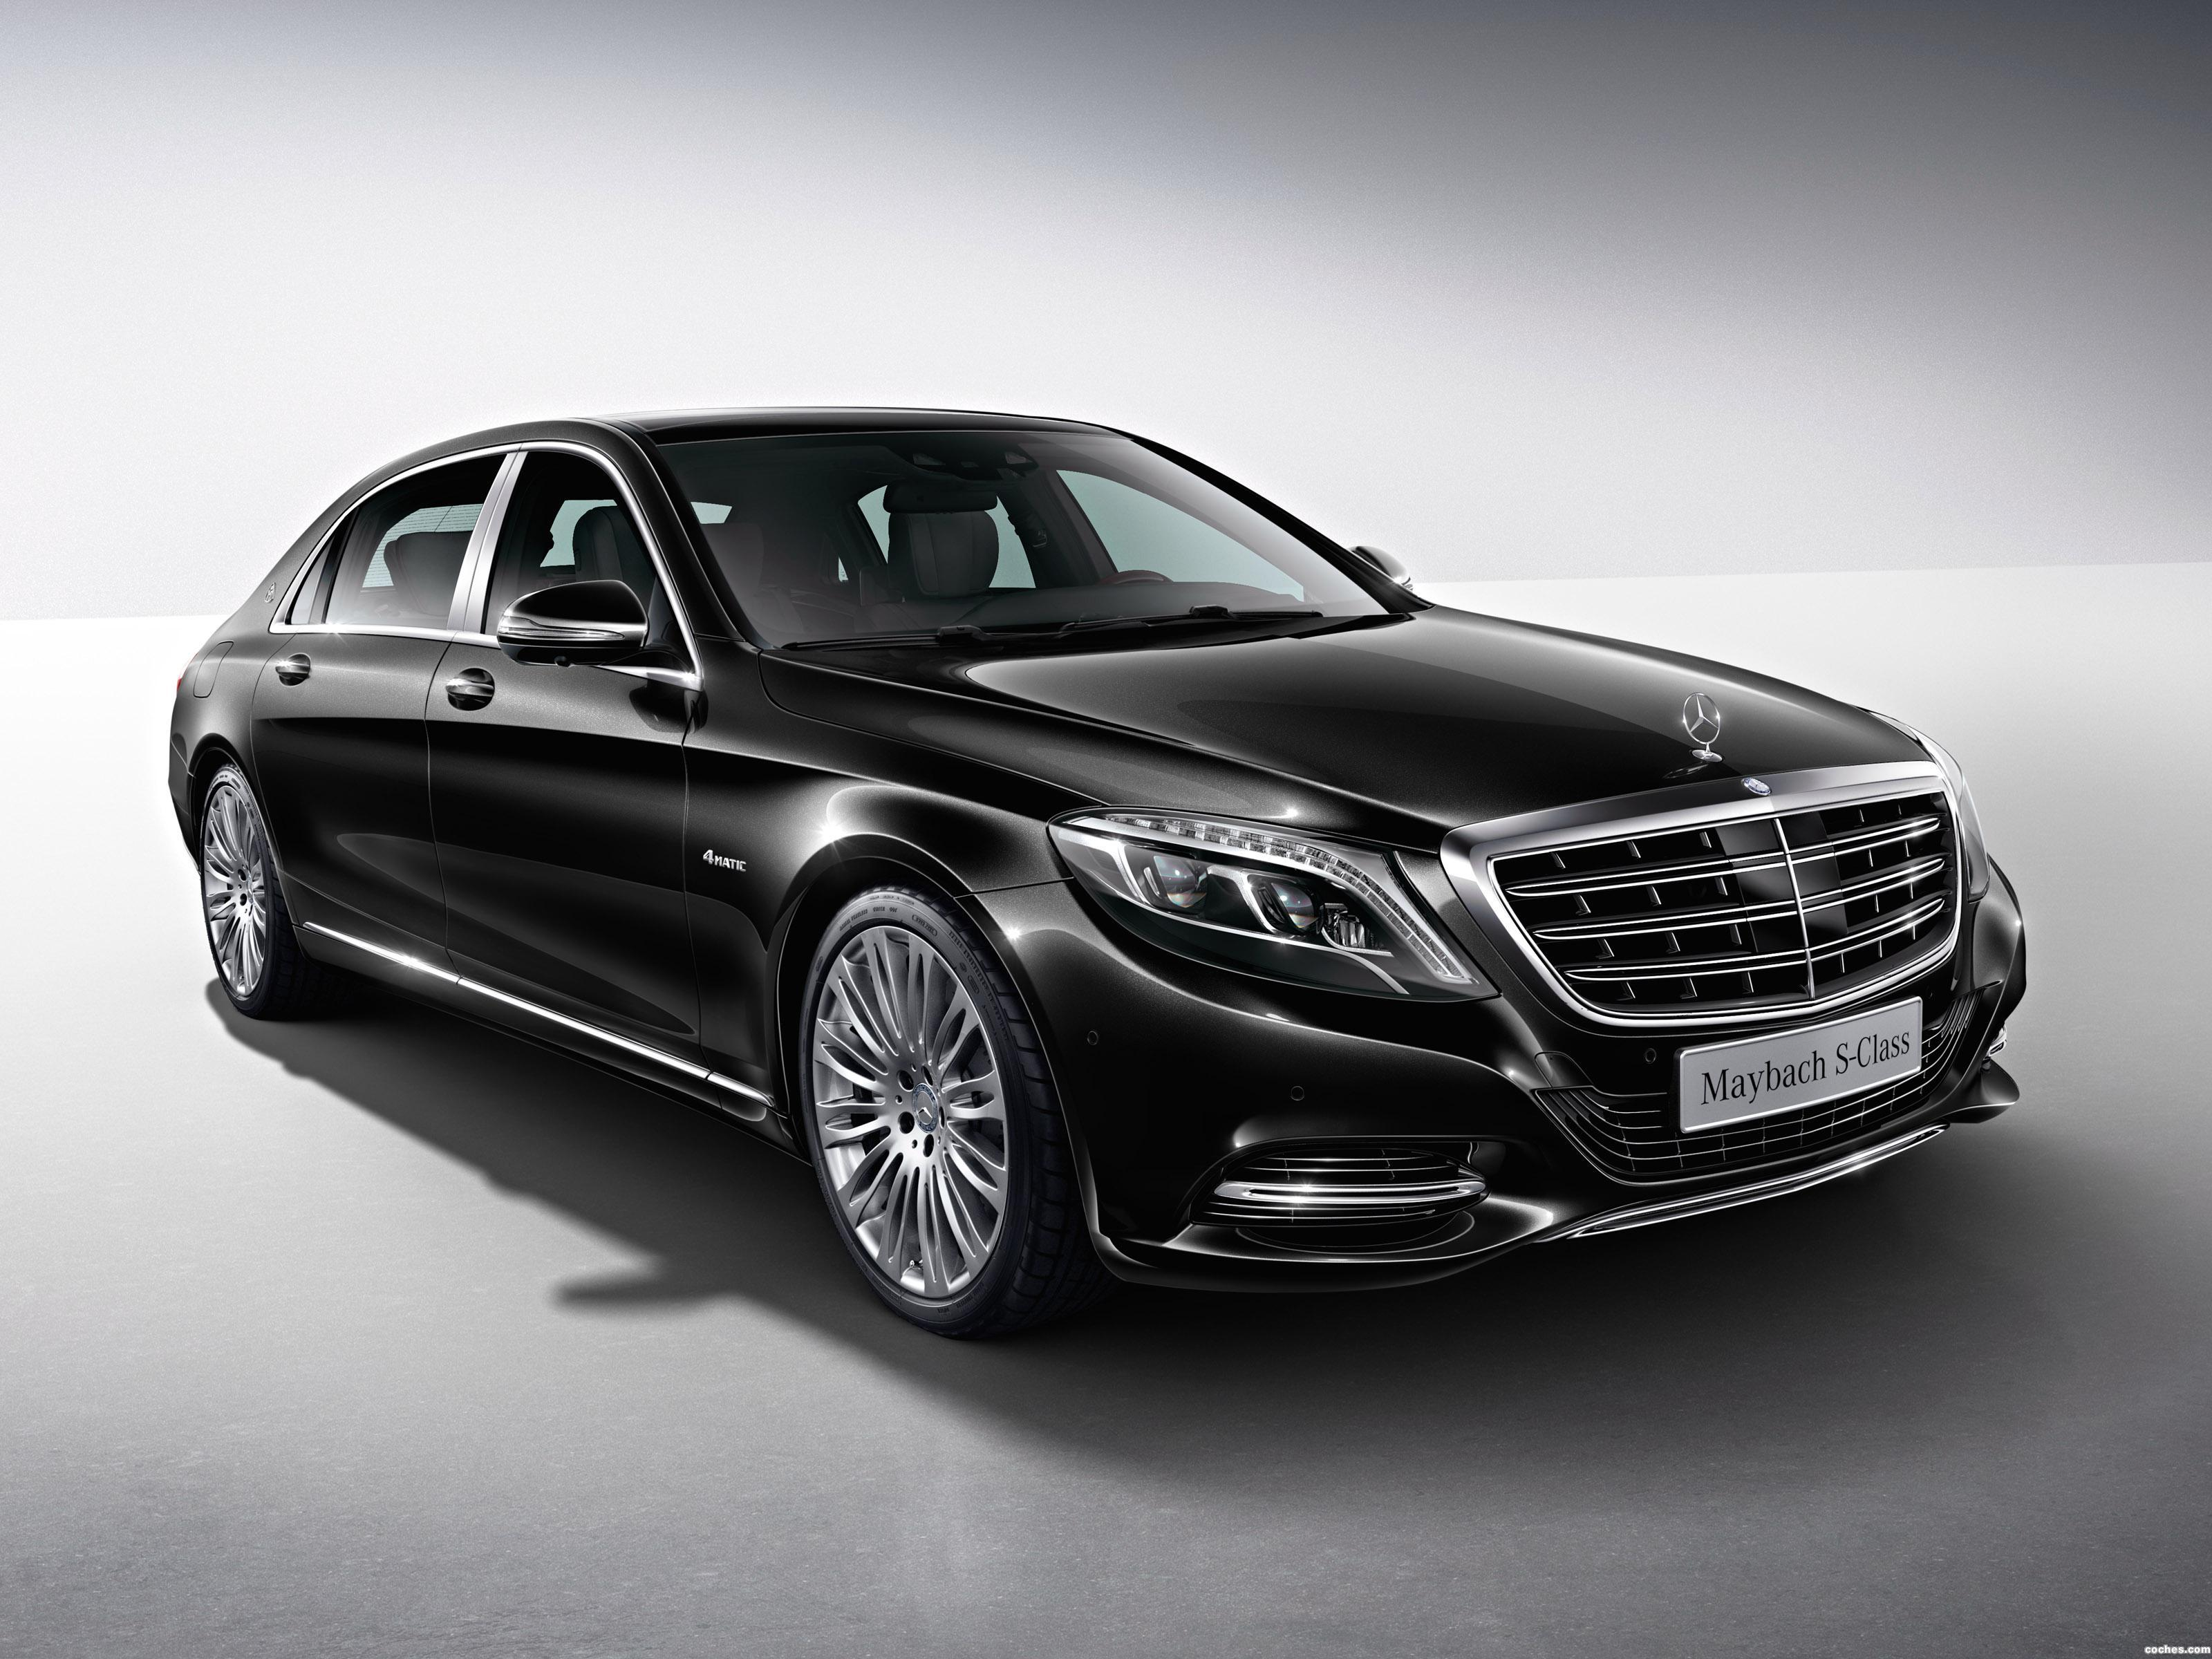 Foto 0 de Mercedes Maybach S500 4MATIC X222 2015